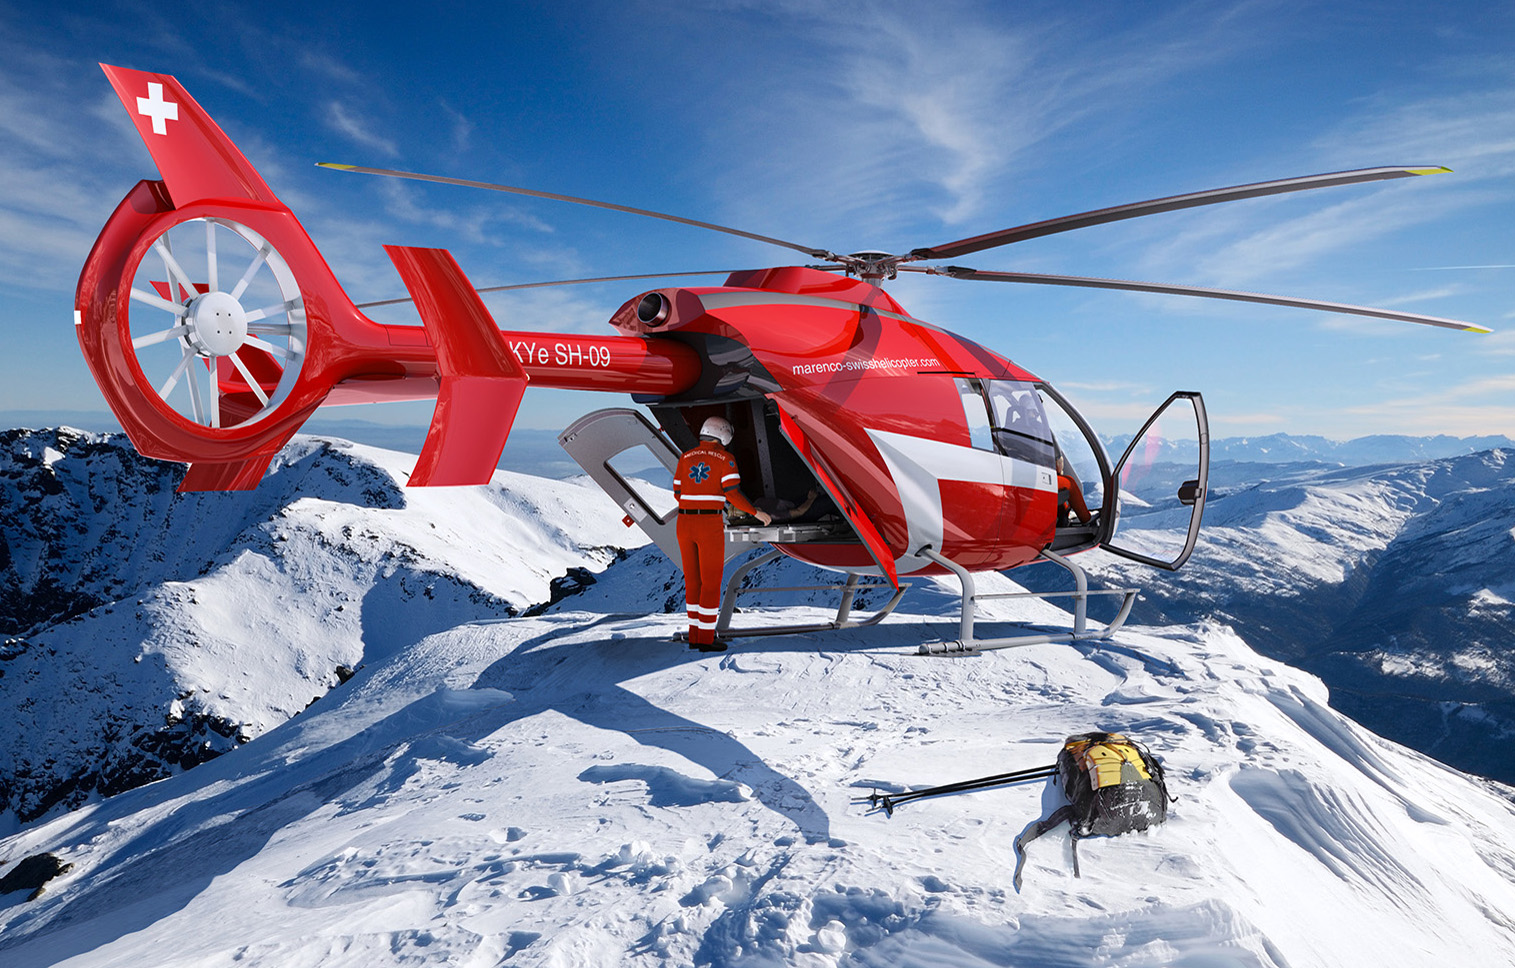 helicopter engineering jobs with Marenco Helicopter Mountain Rescue on Relaxed Cat in addition 150 Feared Dead In Airbus 320 Crash In French Alps together with 5942470779 as well Biggest Plane Antonov An 225 Mriya further F15 Avionics Test.